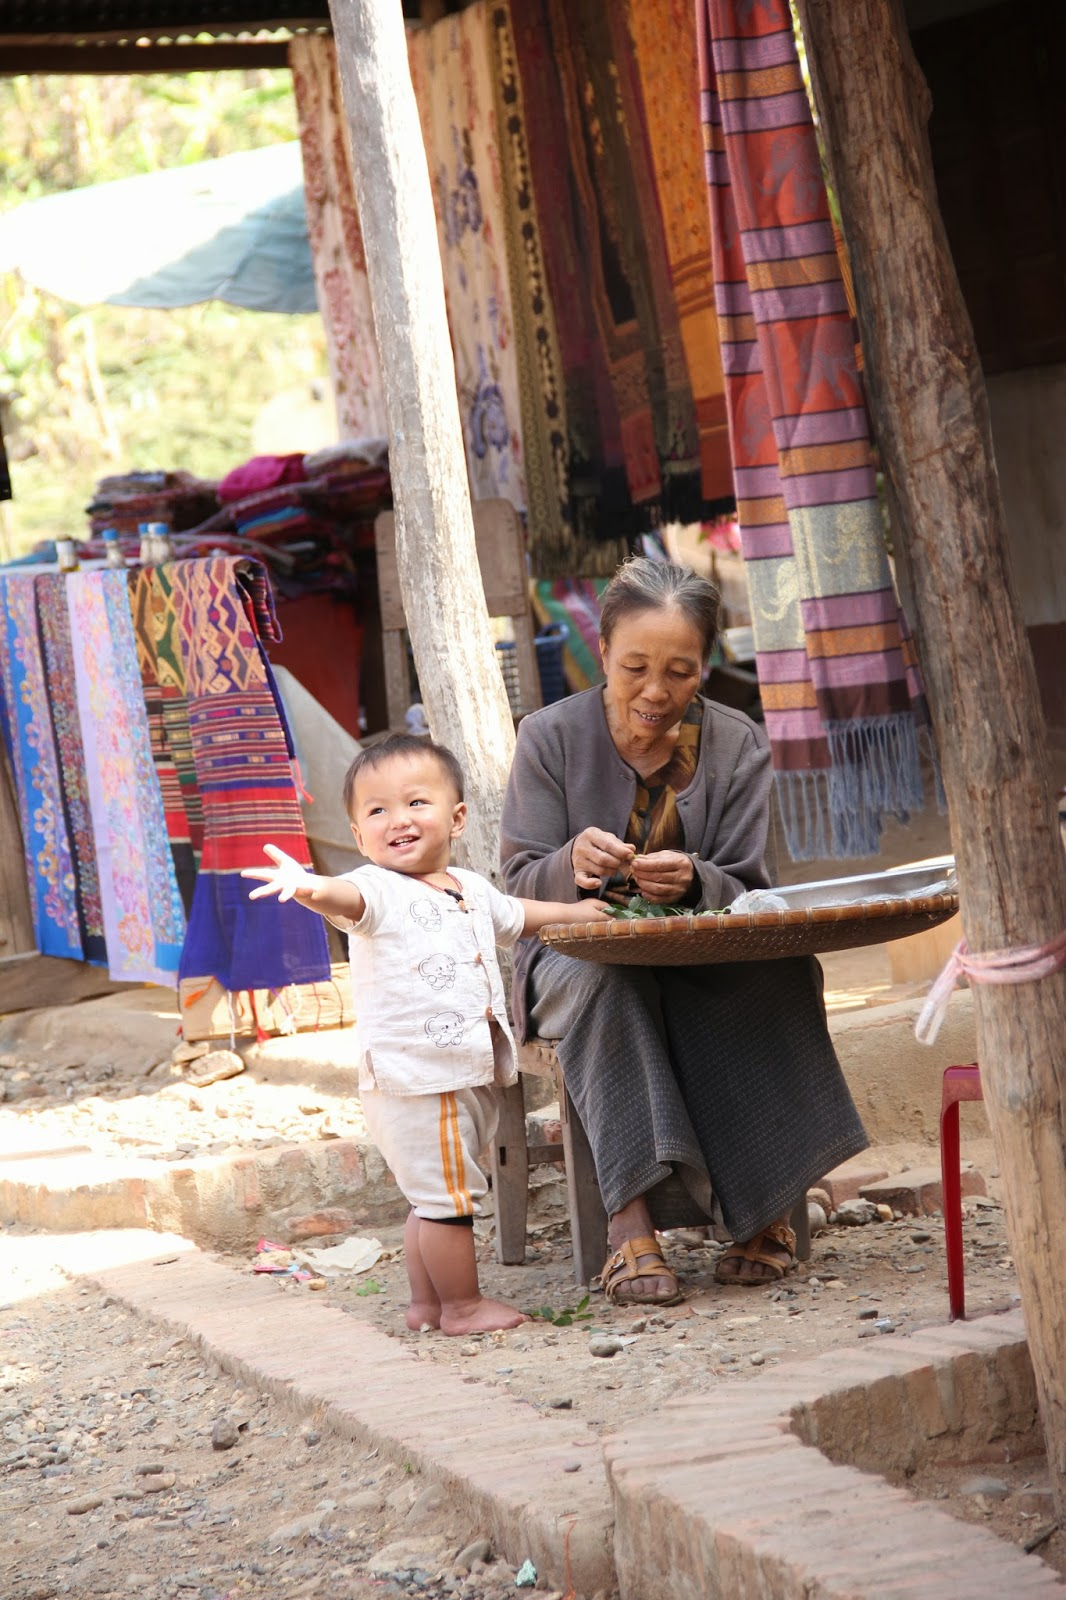 Local woman and child in Baan Xang Hai village